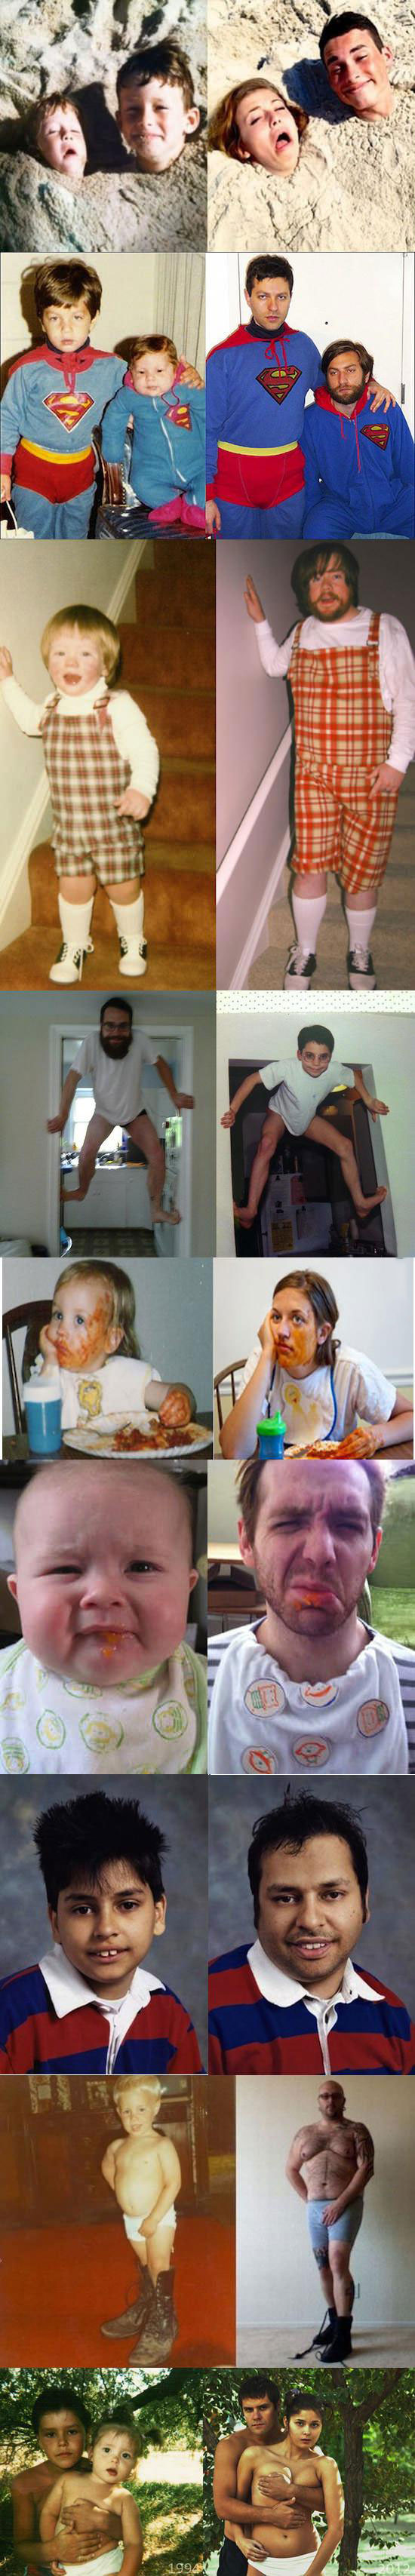 then and now, reenacting childhood photographs